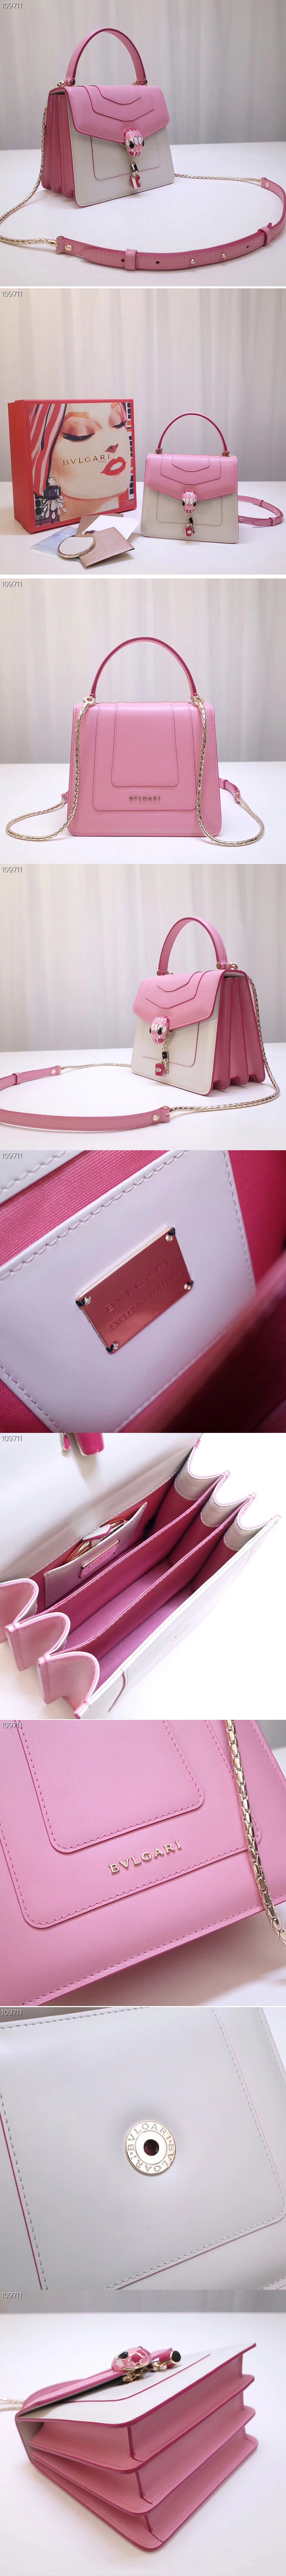 Replica Bvlgari Serpenti Forever 288676 Crossbody Bags Pink/White Calf Leather